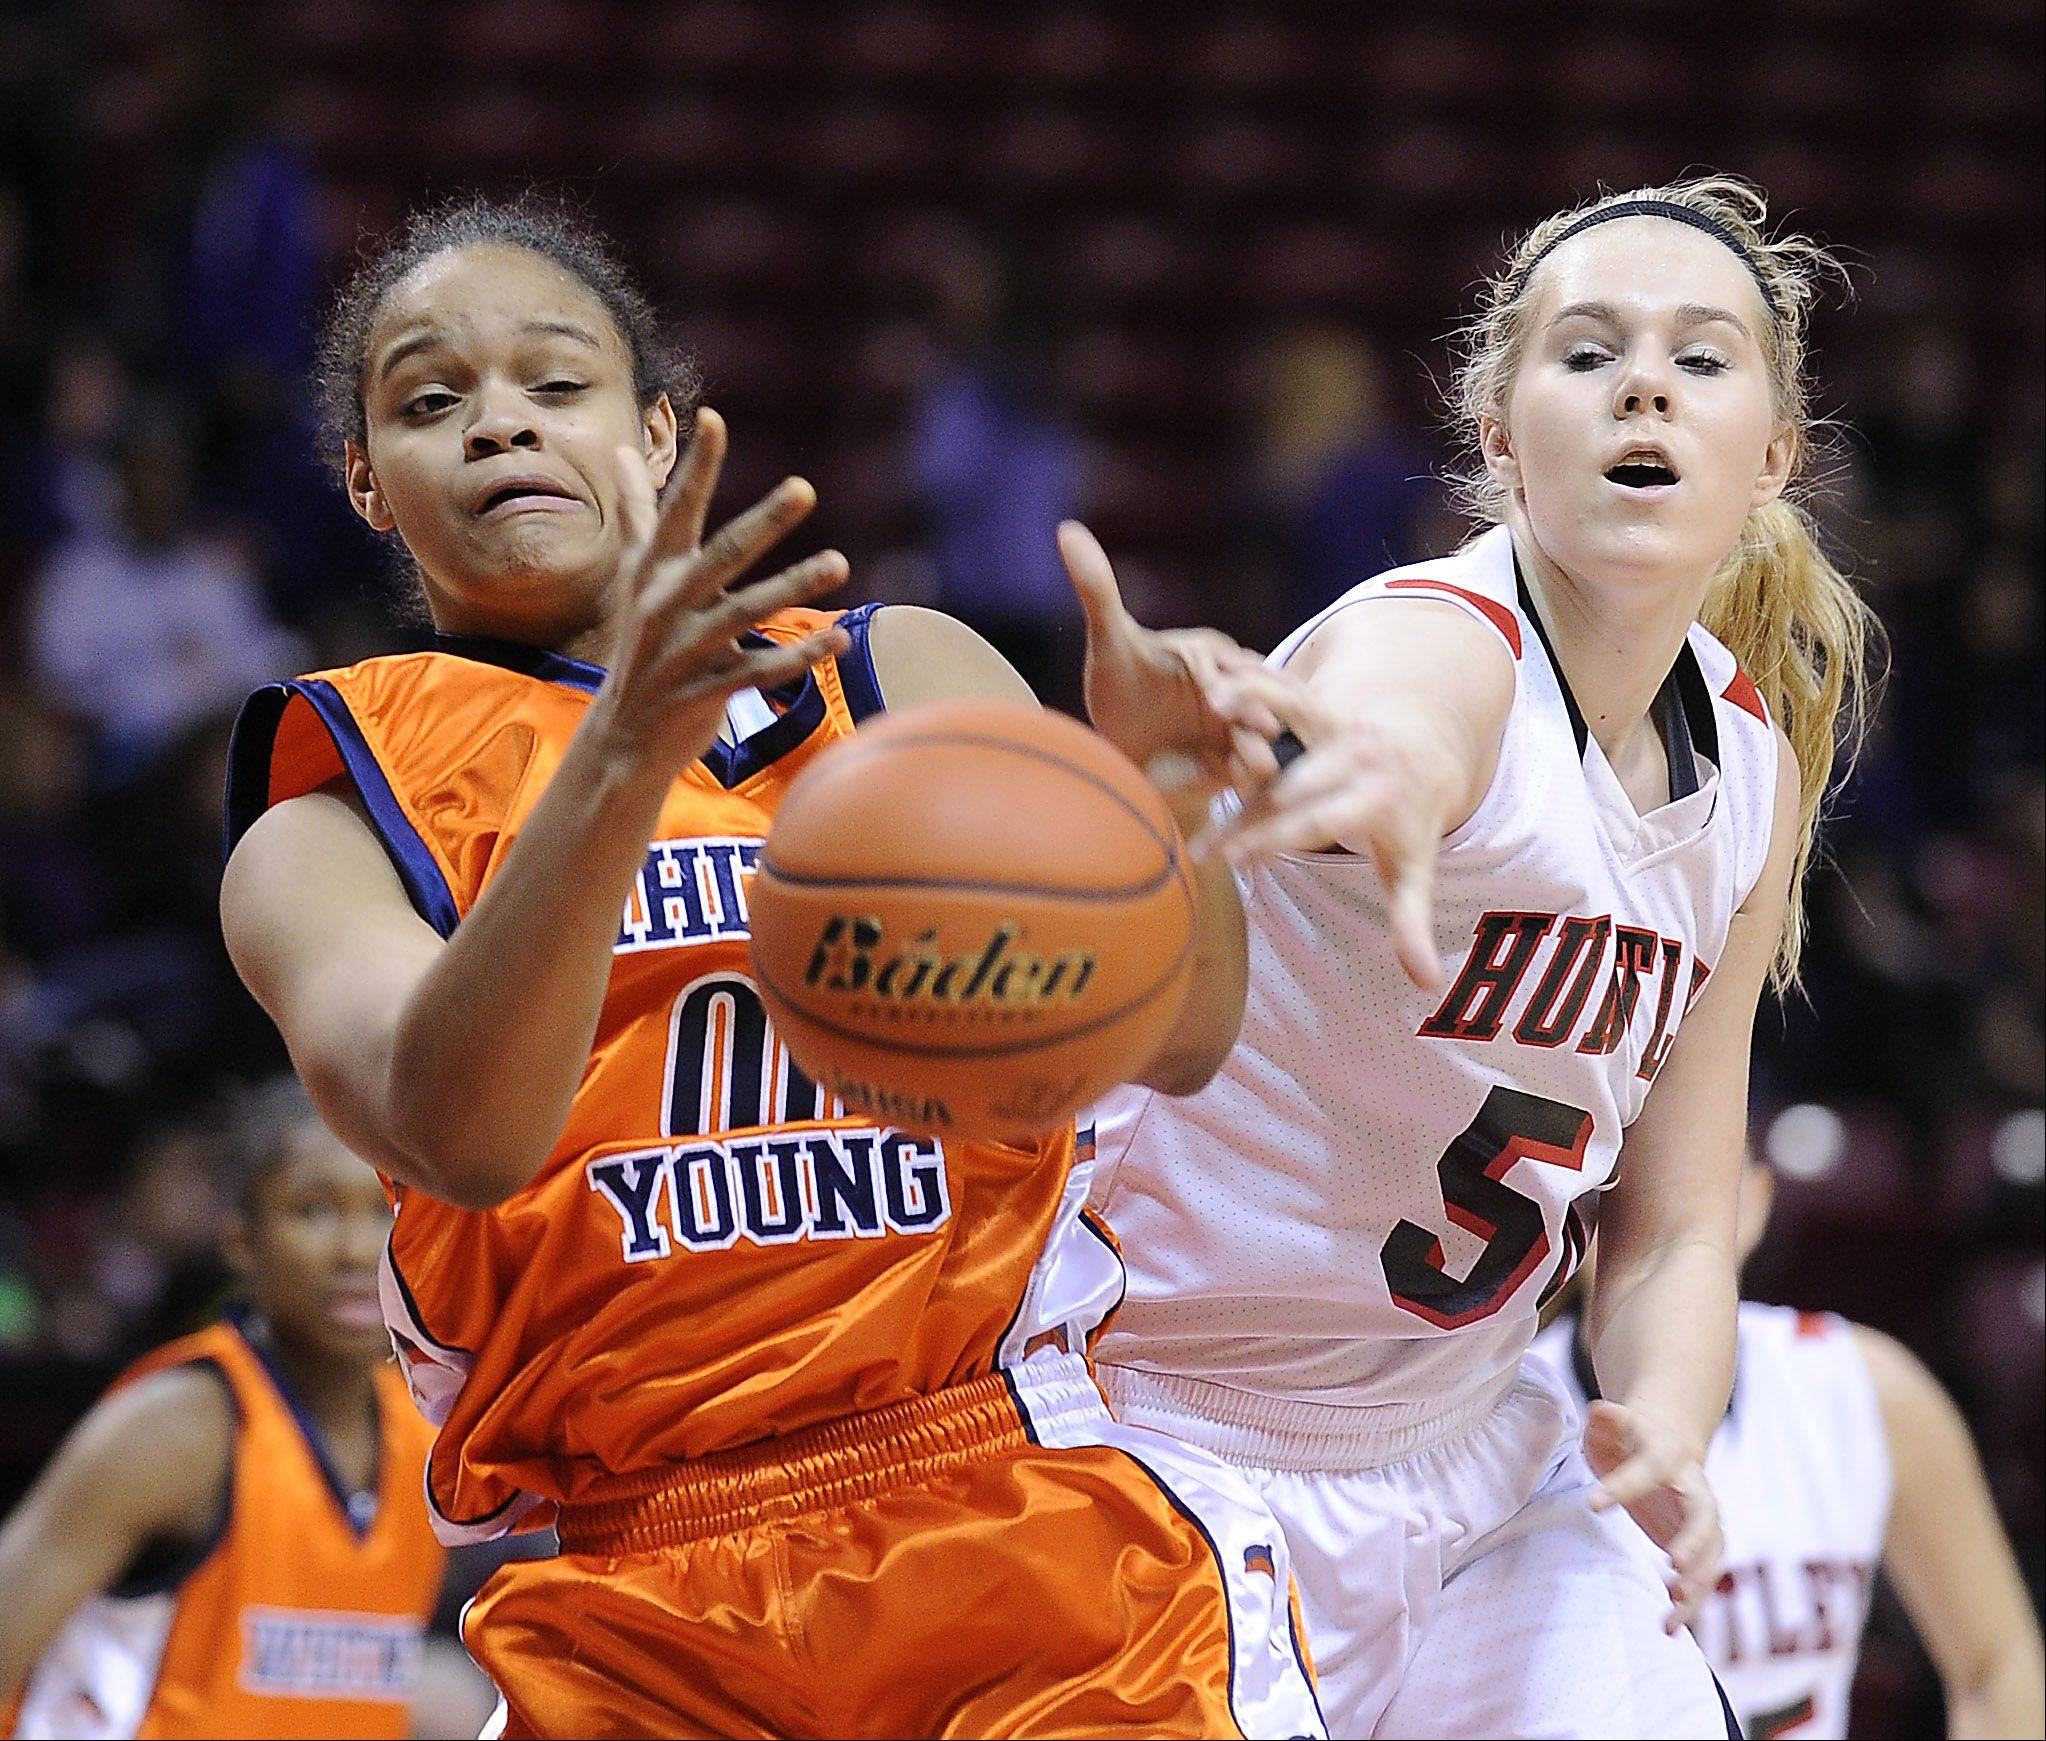 Huntley's Ali Andrews knocks the ball away from Whitney Young's Khaalia Hillsman in the first half of the Class 4A third-place game Saturday in Normal.